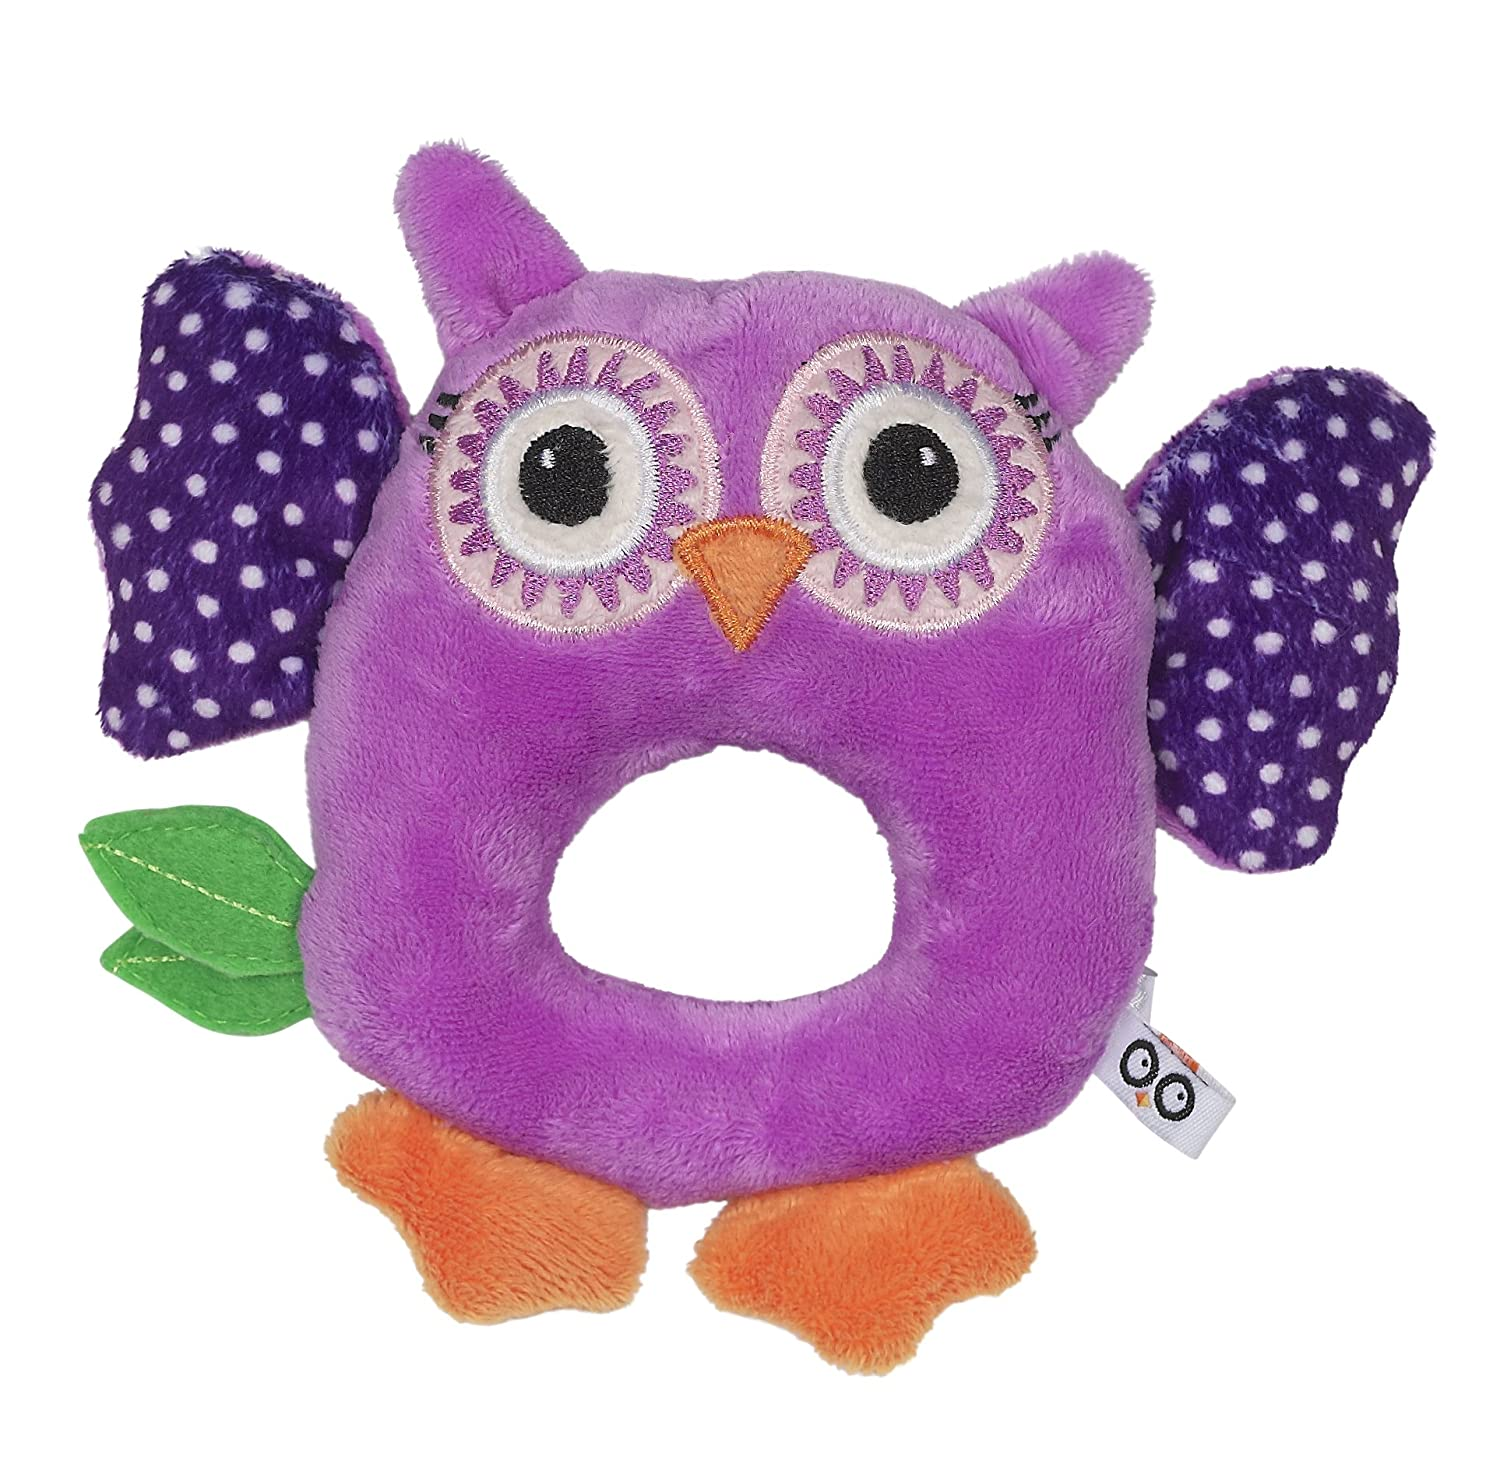 Baby Buddy Rattle - Owl/Purple ZOOCCHINI 41003